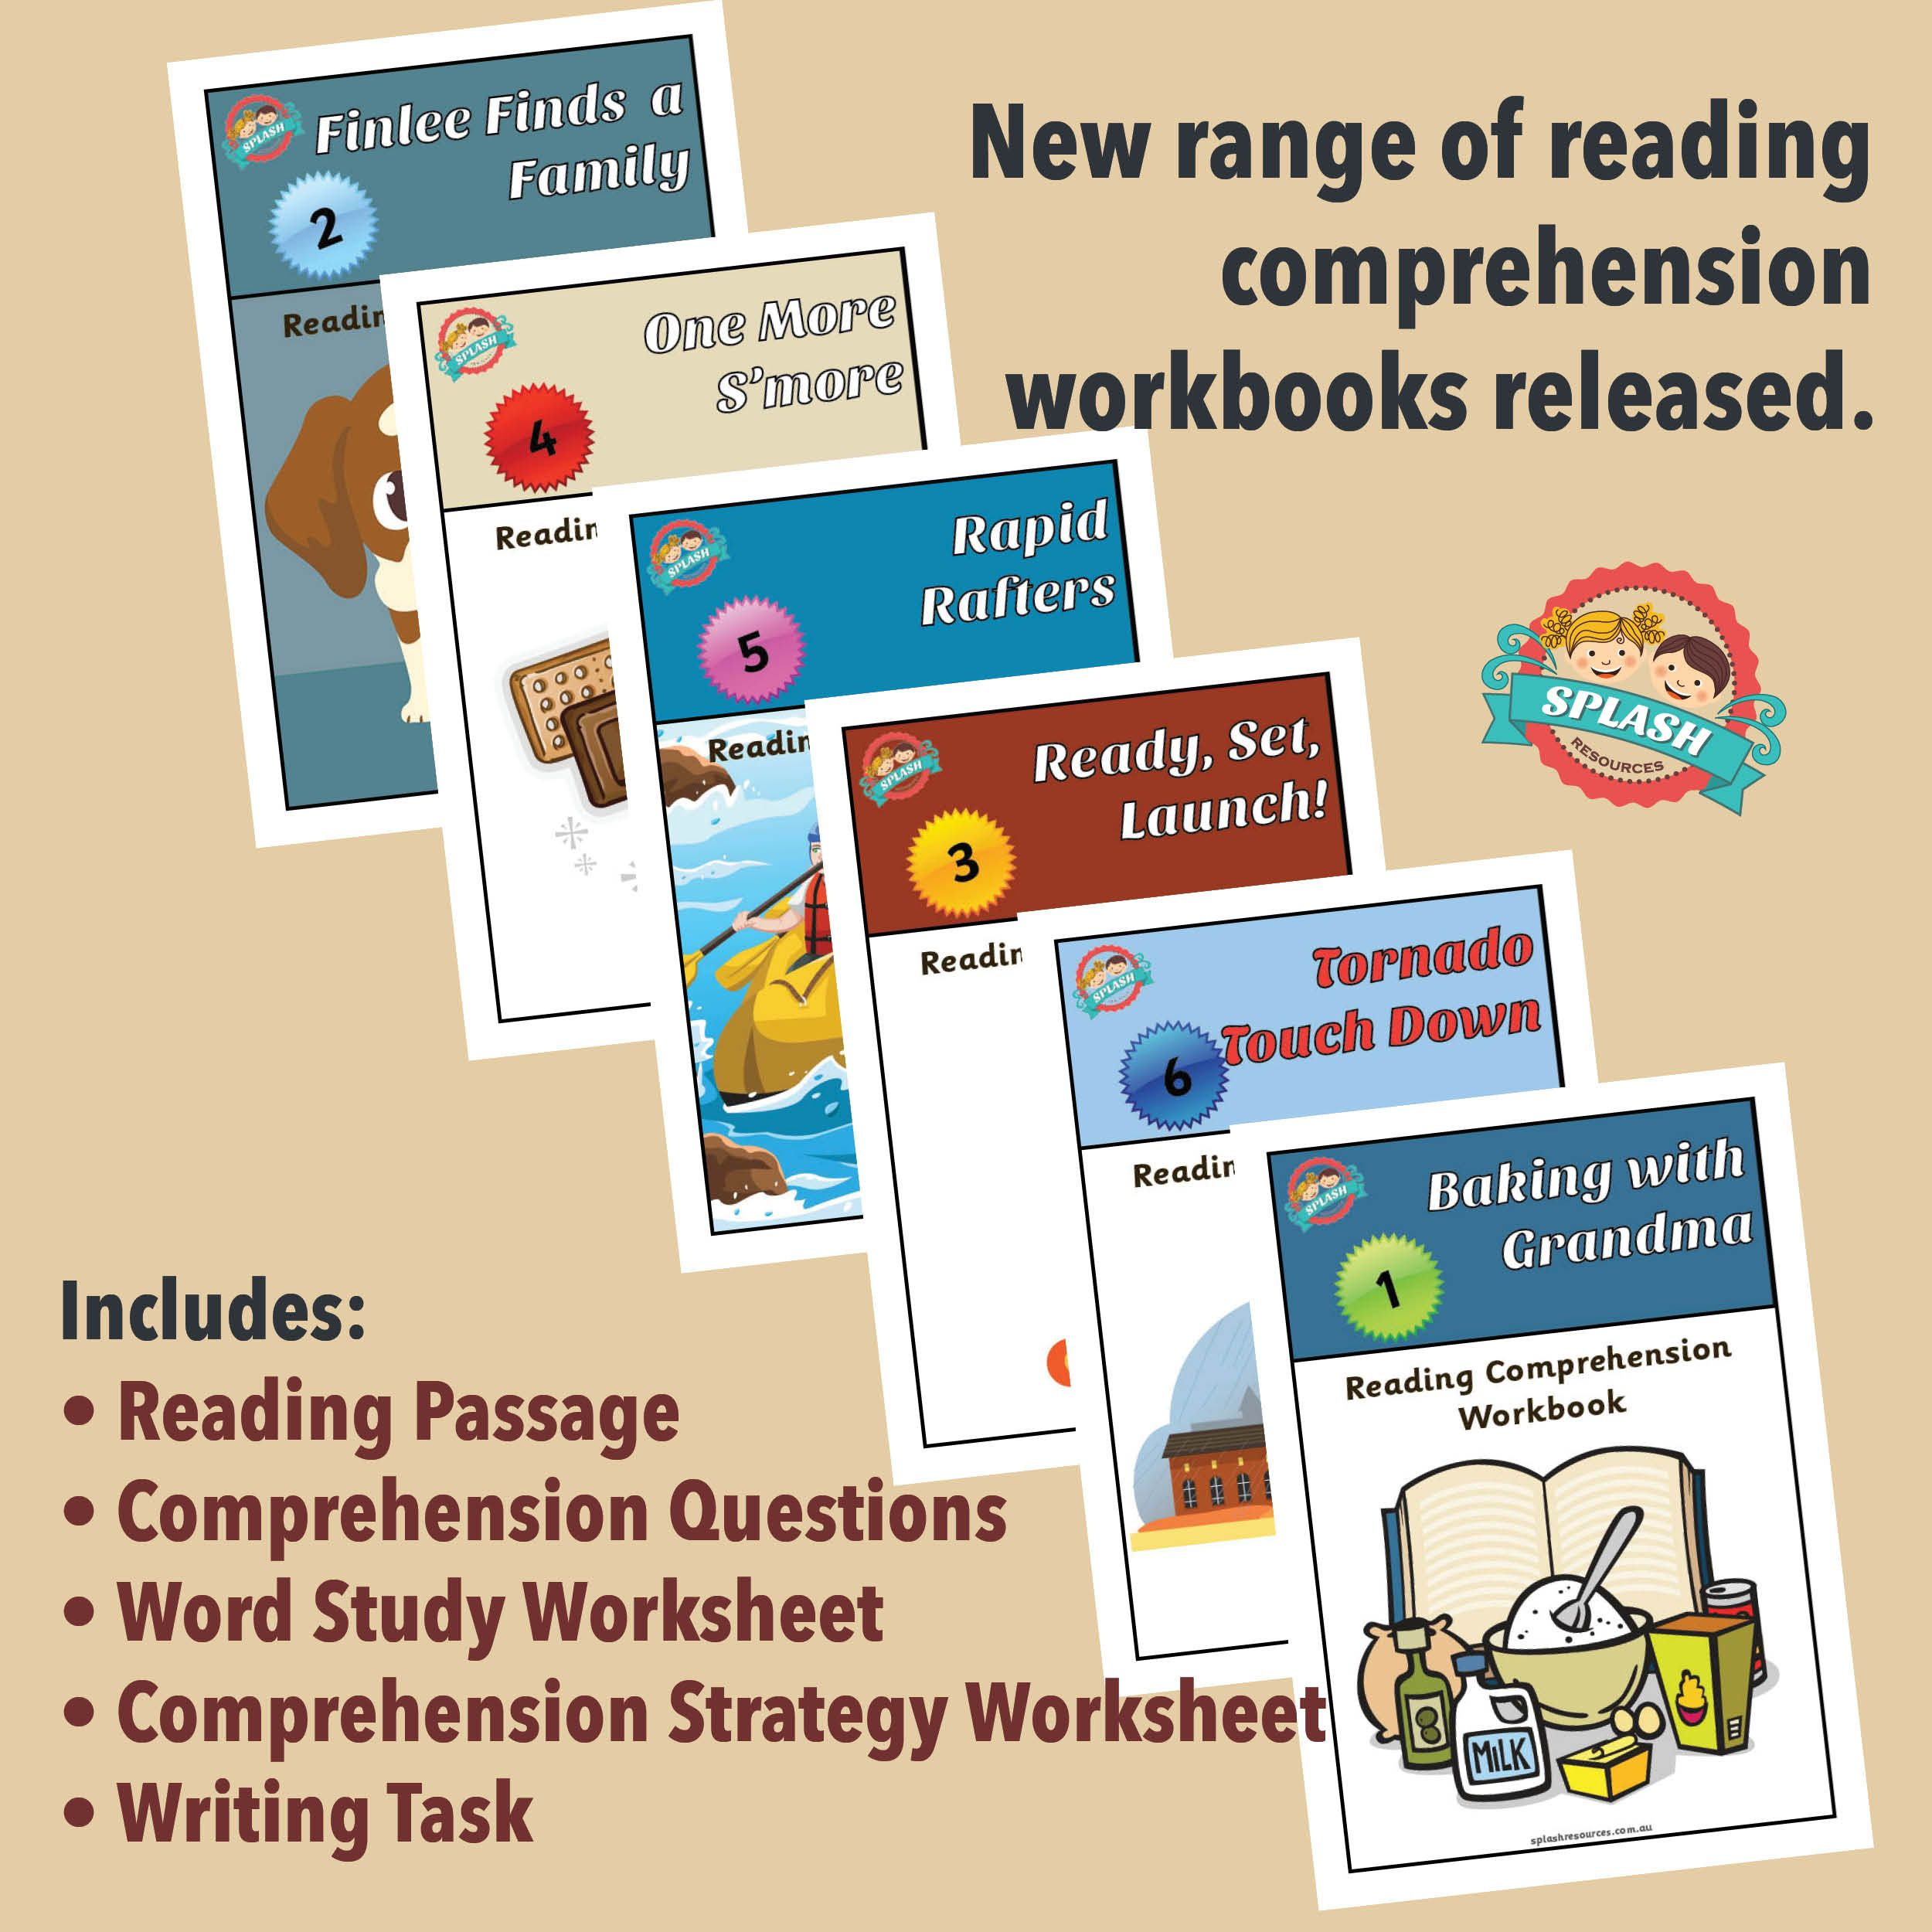 Reading Comprehension Workbooks Include Reading Passage